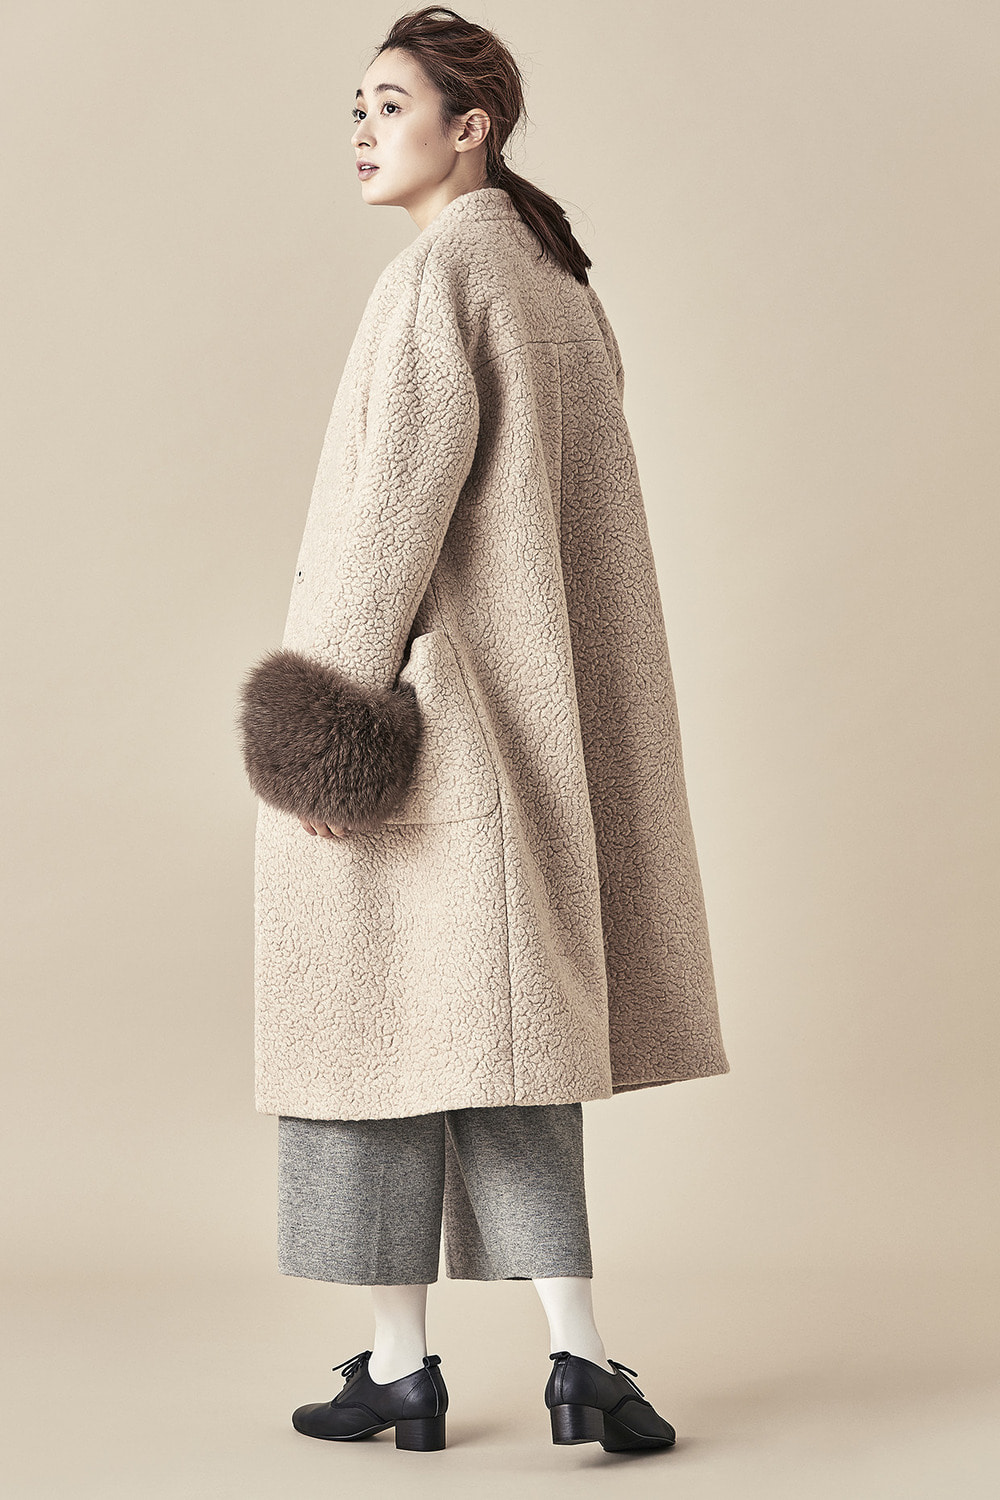 Wool Fur Sleeve Coat - Beige